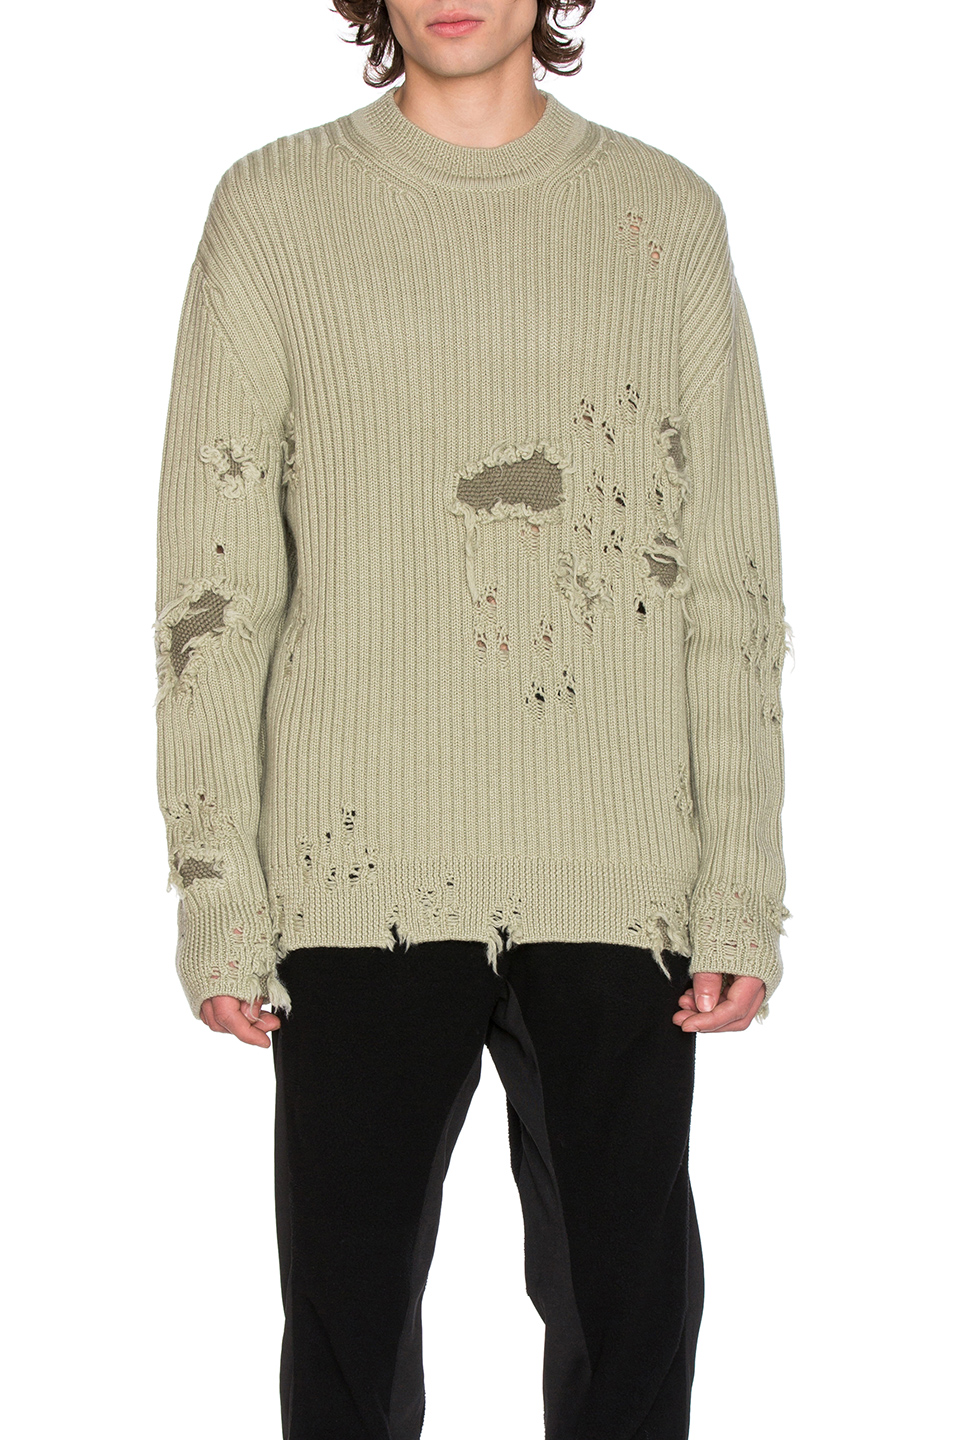 YEEZY Season 3 Destroyed Military Rib Sweater in Green